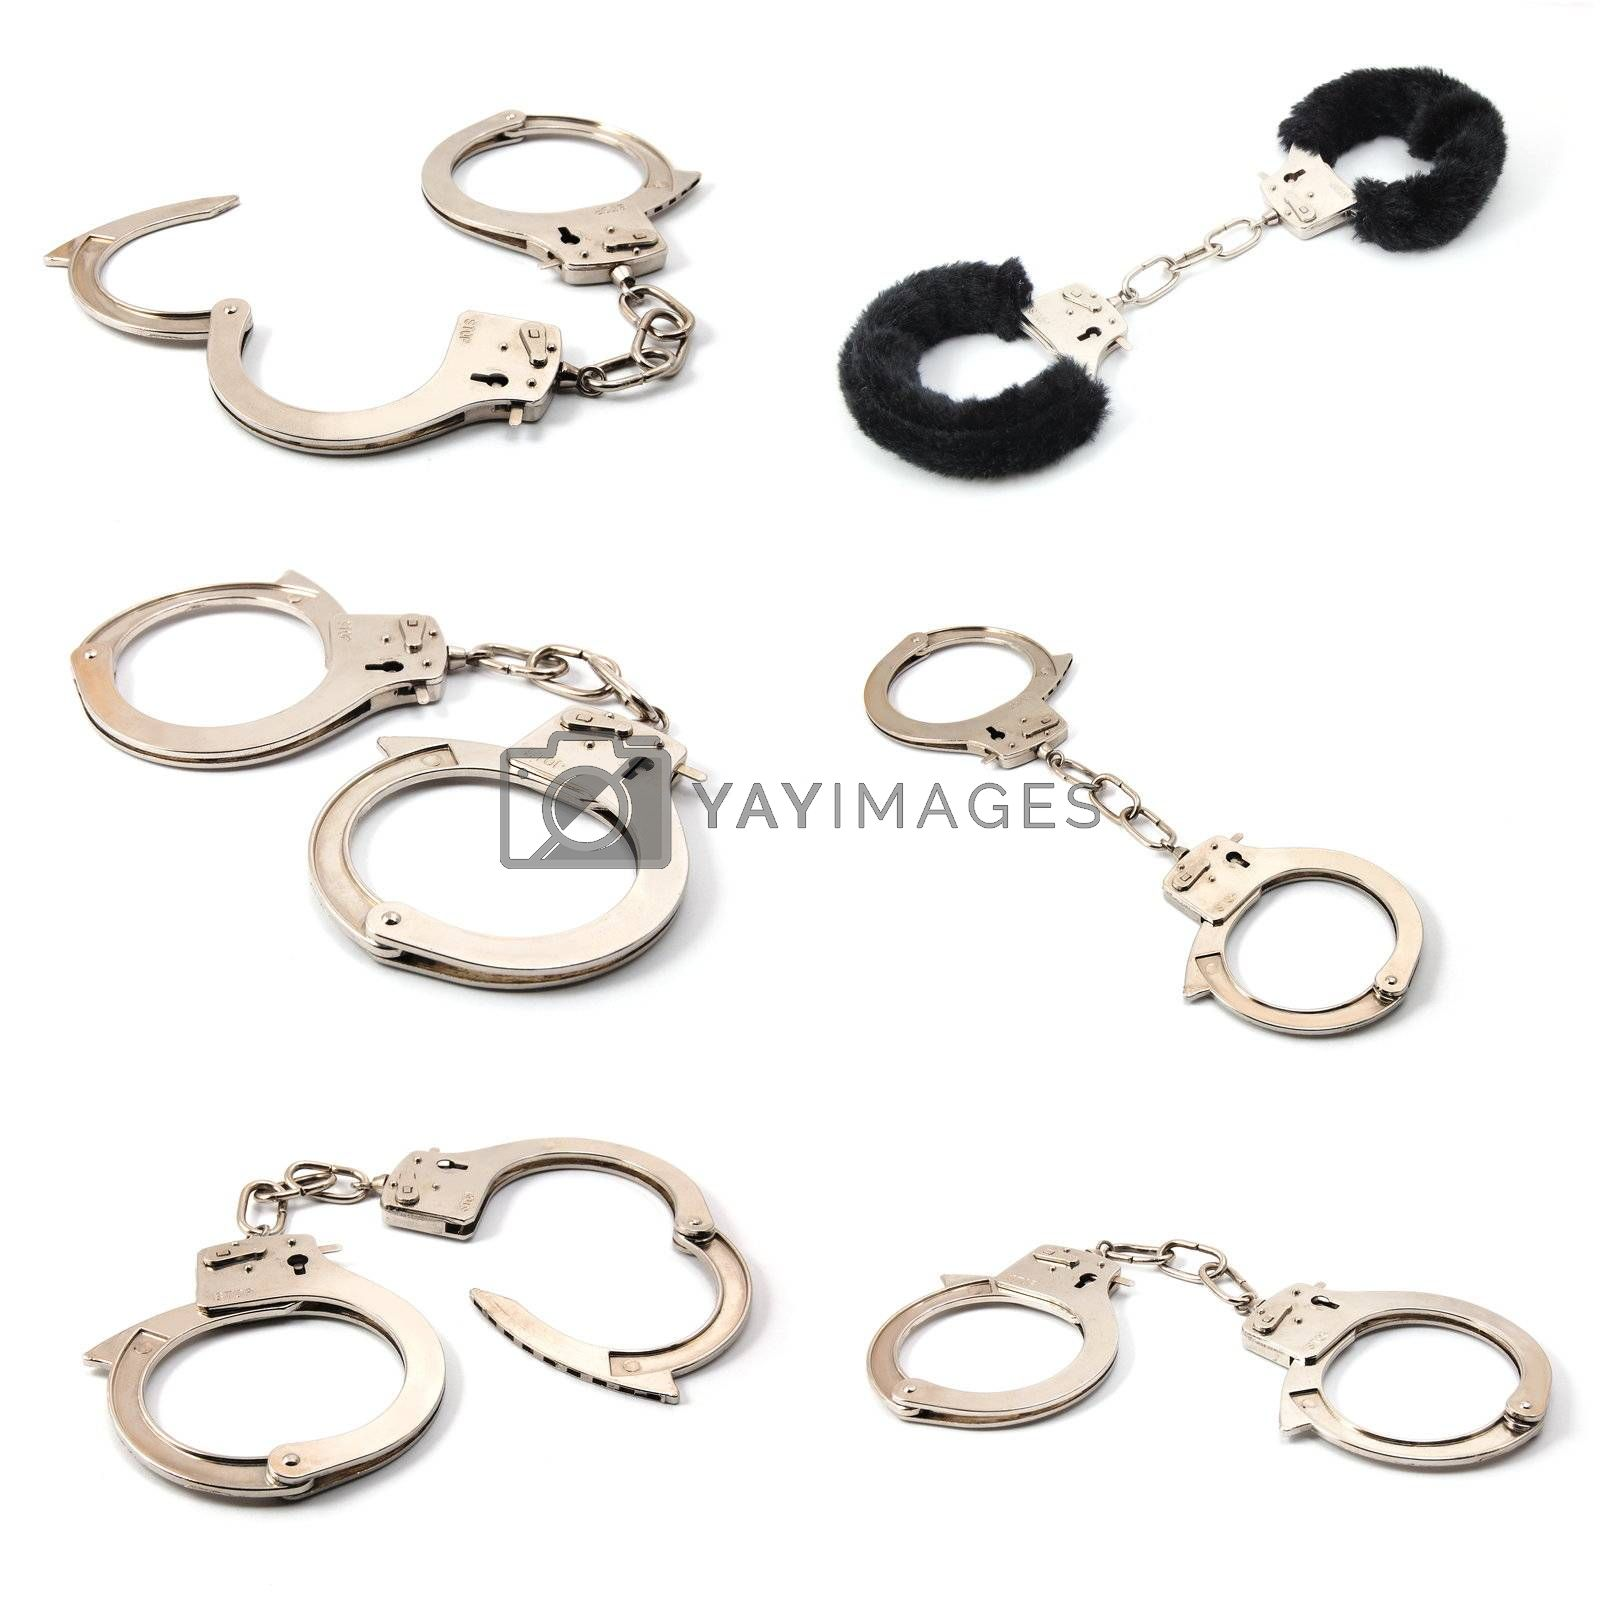 sexy handcuffs collection isolated on white background